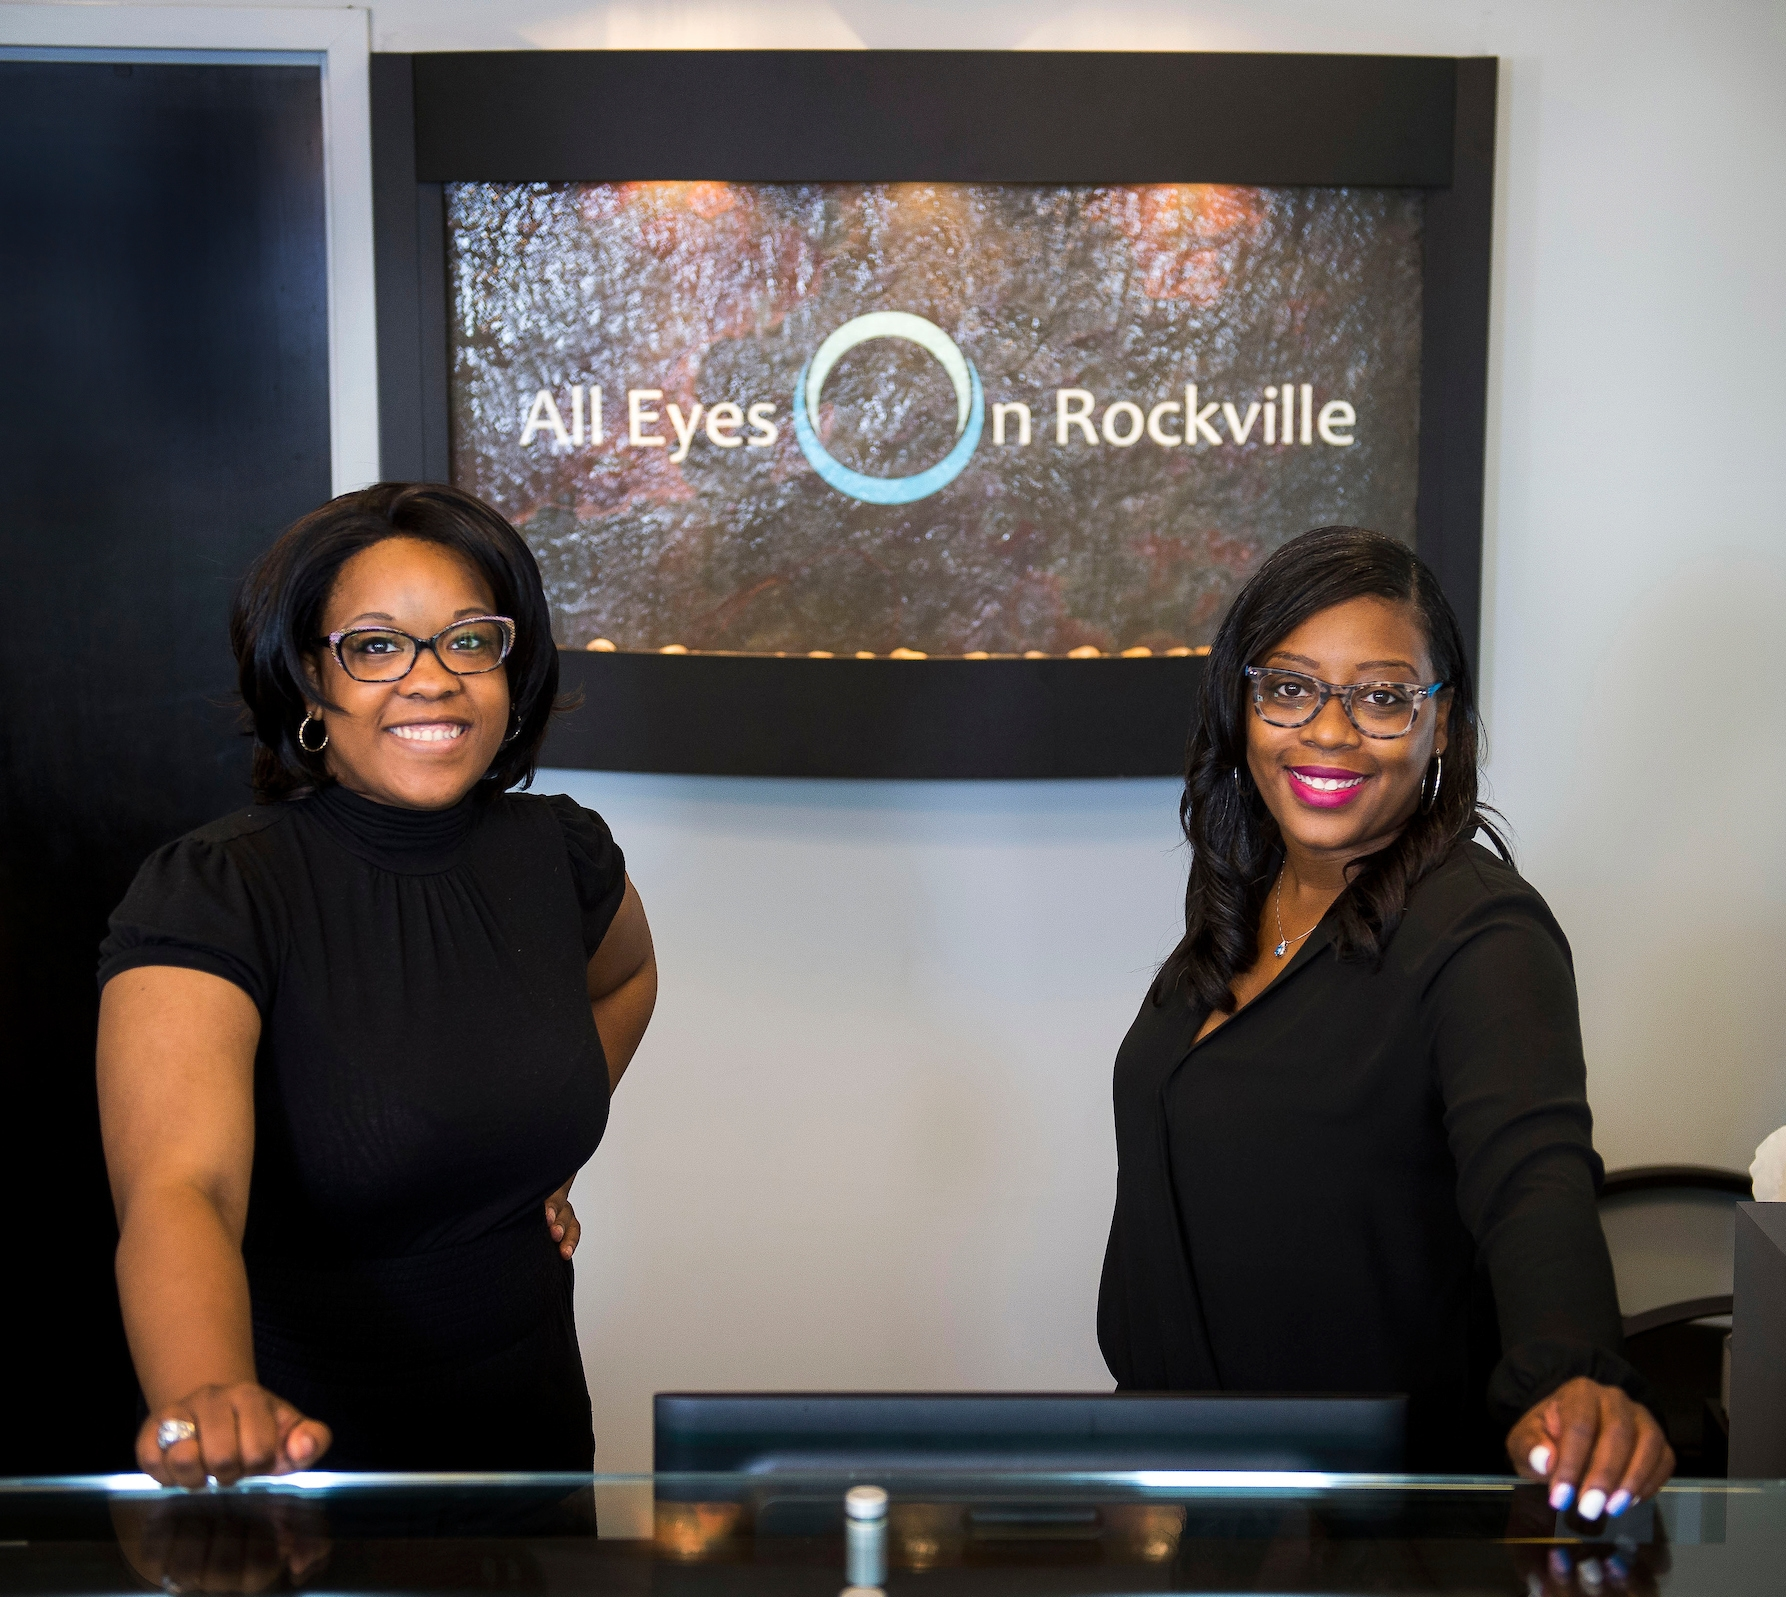 All Eyes On Rockville Opticians